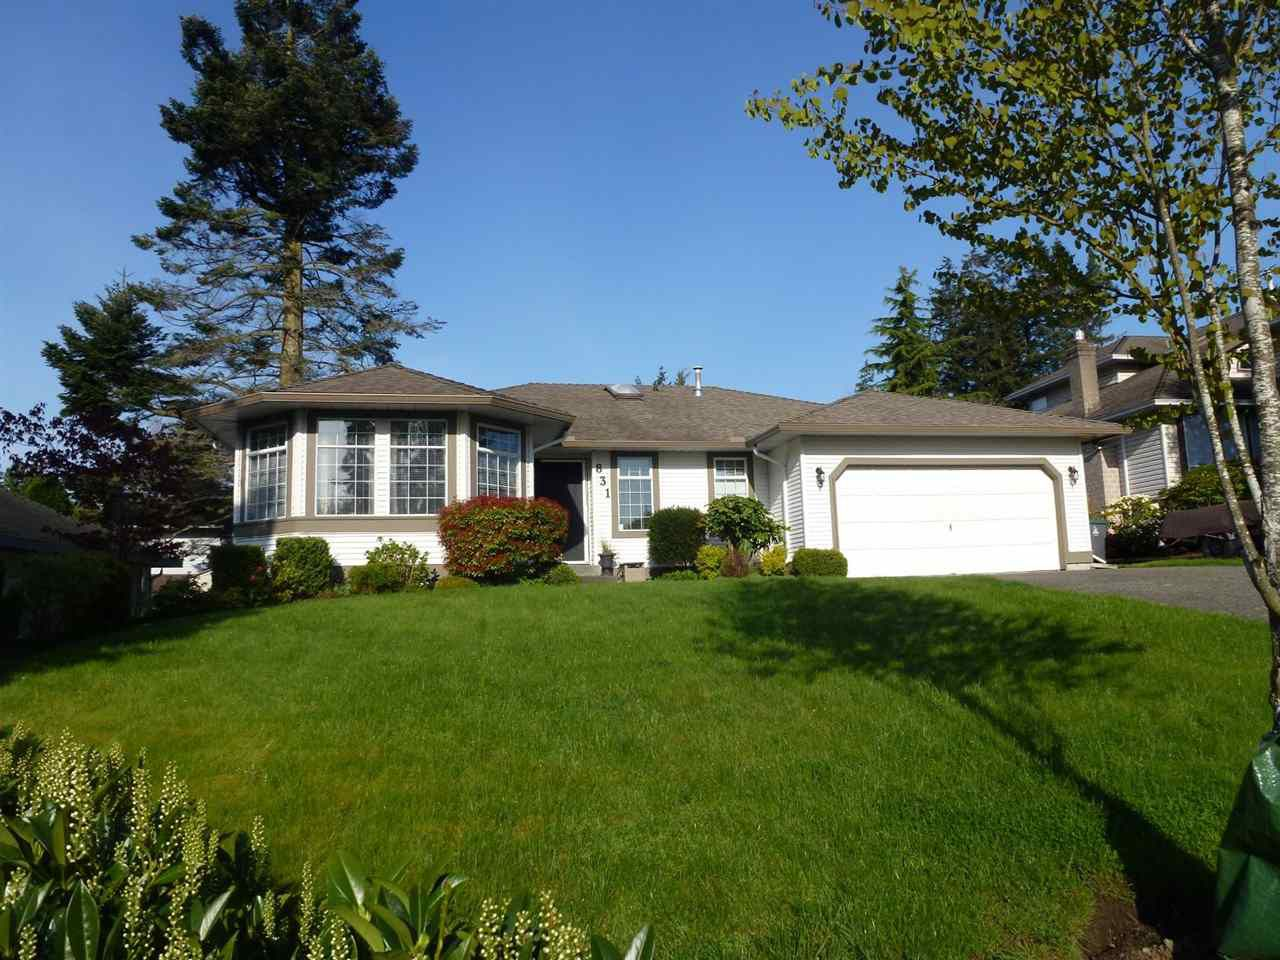 """Main Photo: 831 165 Street in Surrey: King George Corridor House for sale in """"South Meridian"""" (South Surrey White Rock)  : MLS®# R2361071"""